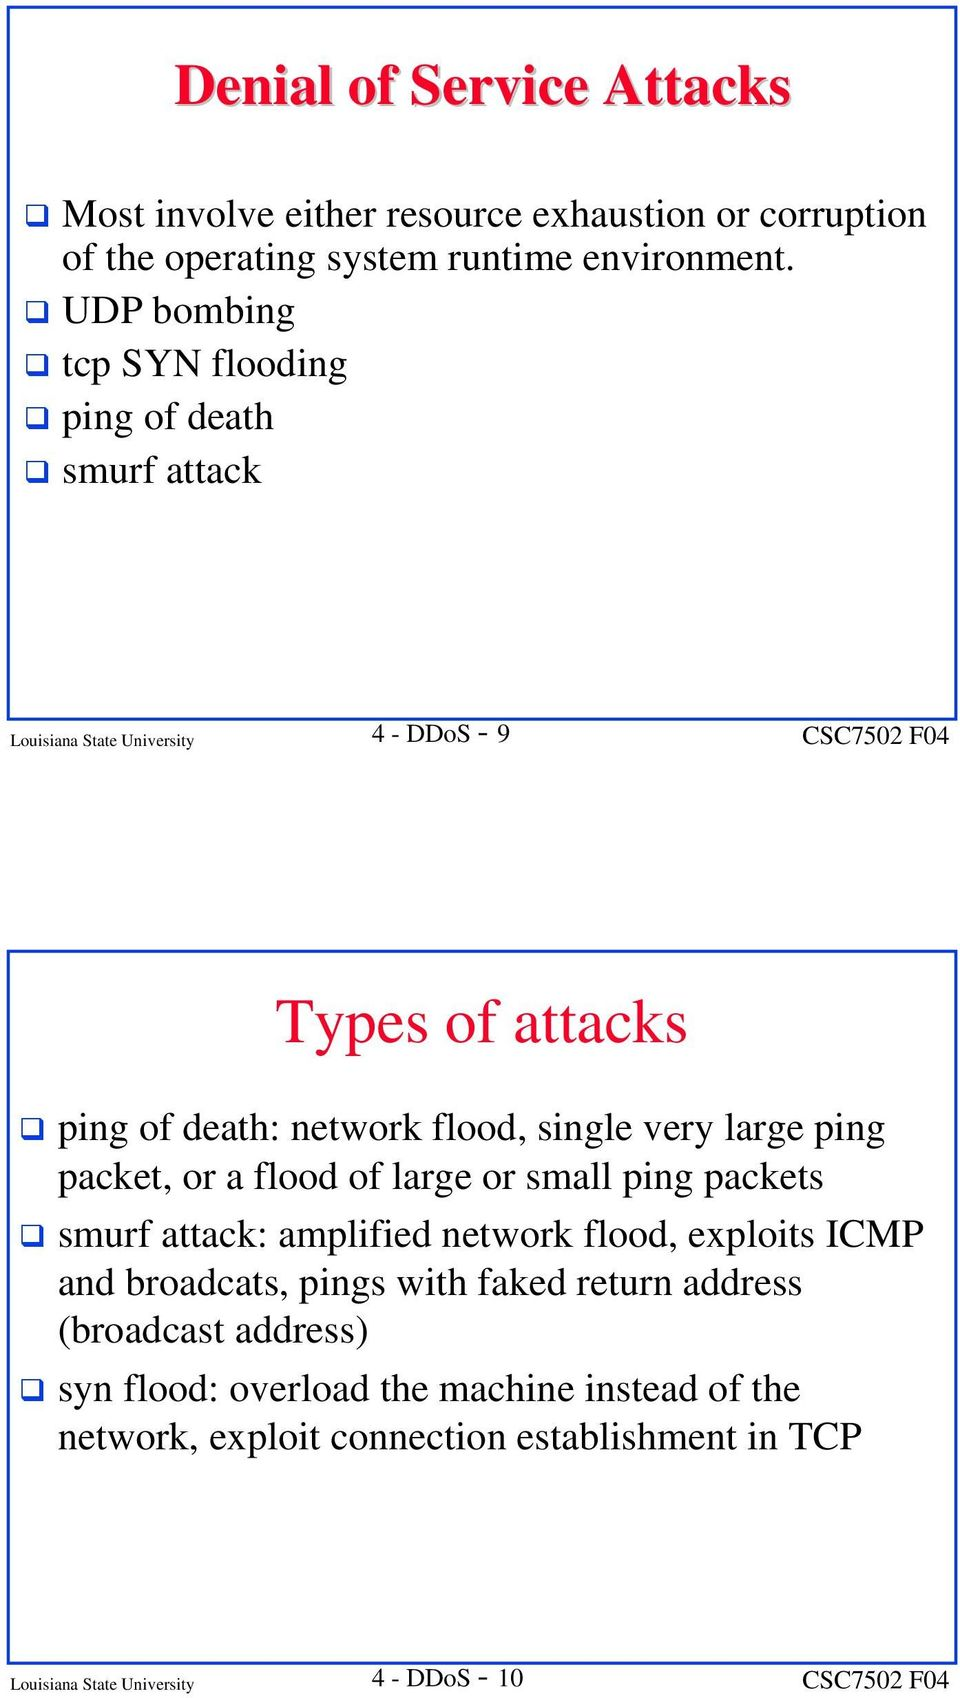 very large ping packet, or a flood of large or small ping packets smurf attack: amplified network flood, exploits ICMP and broadcats, pings with